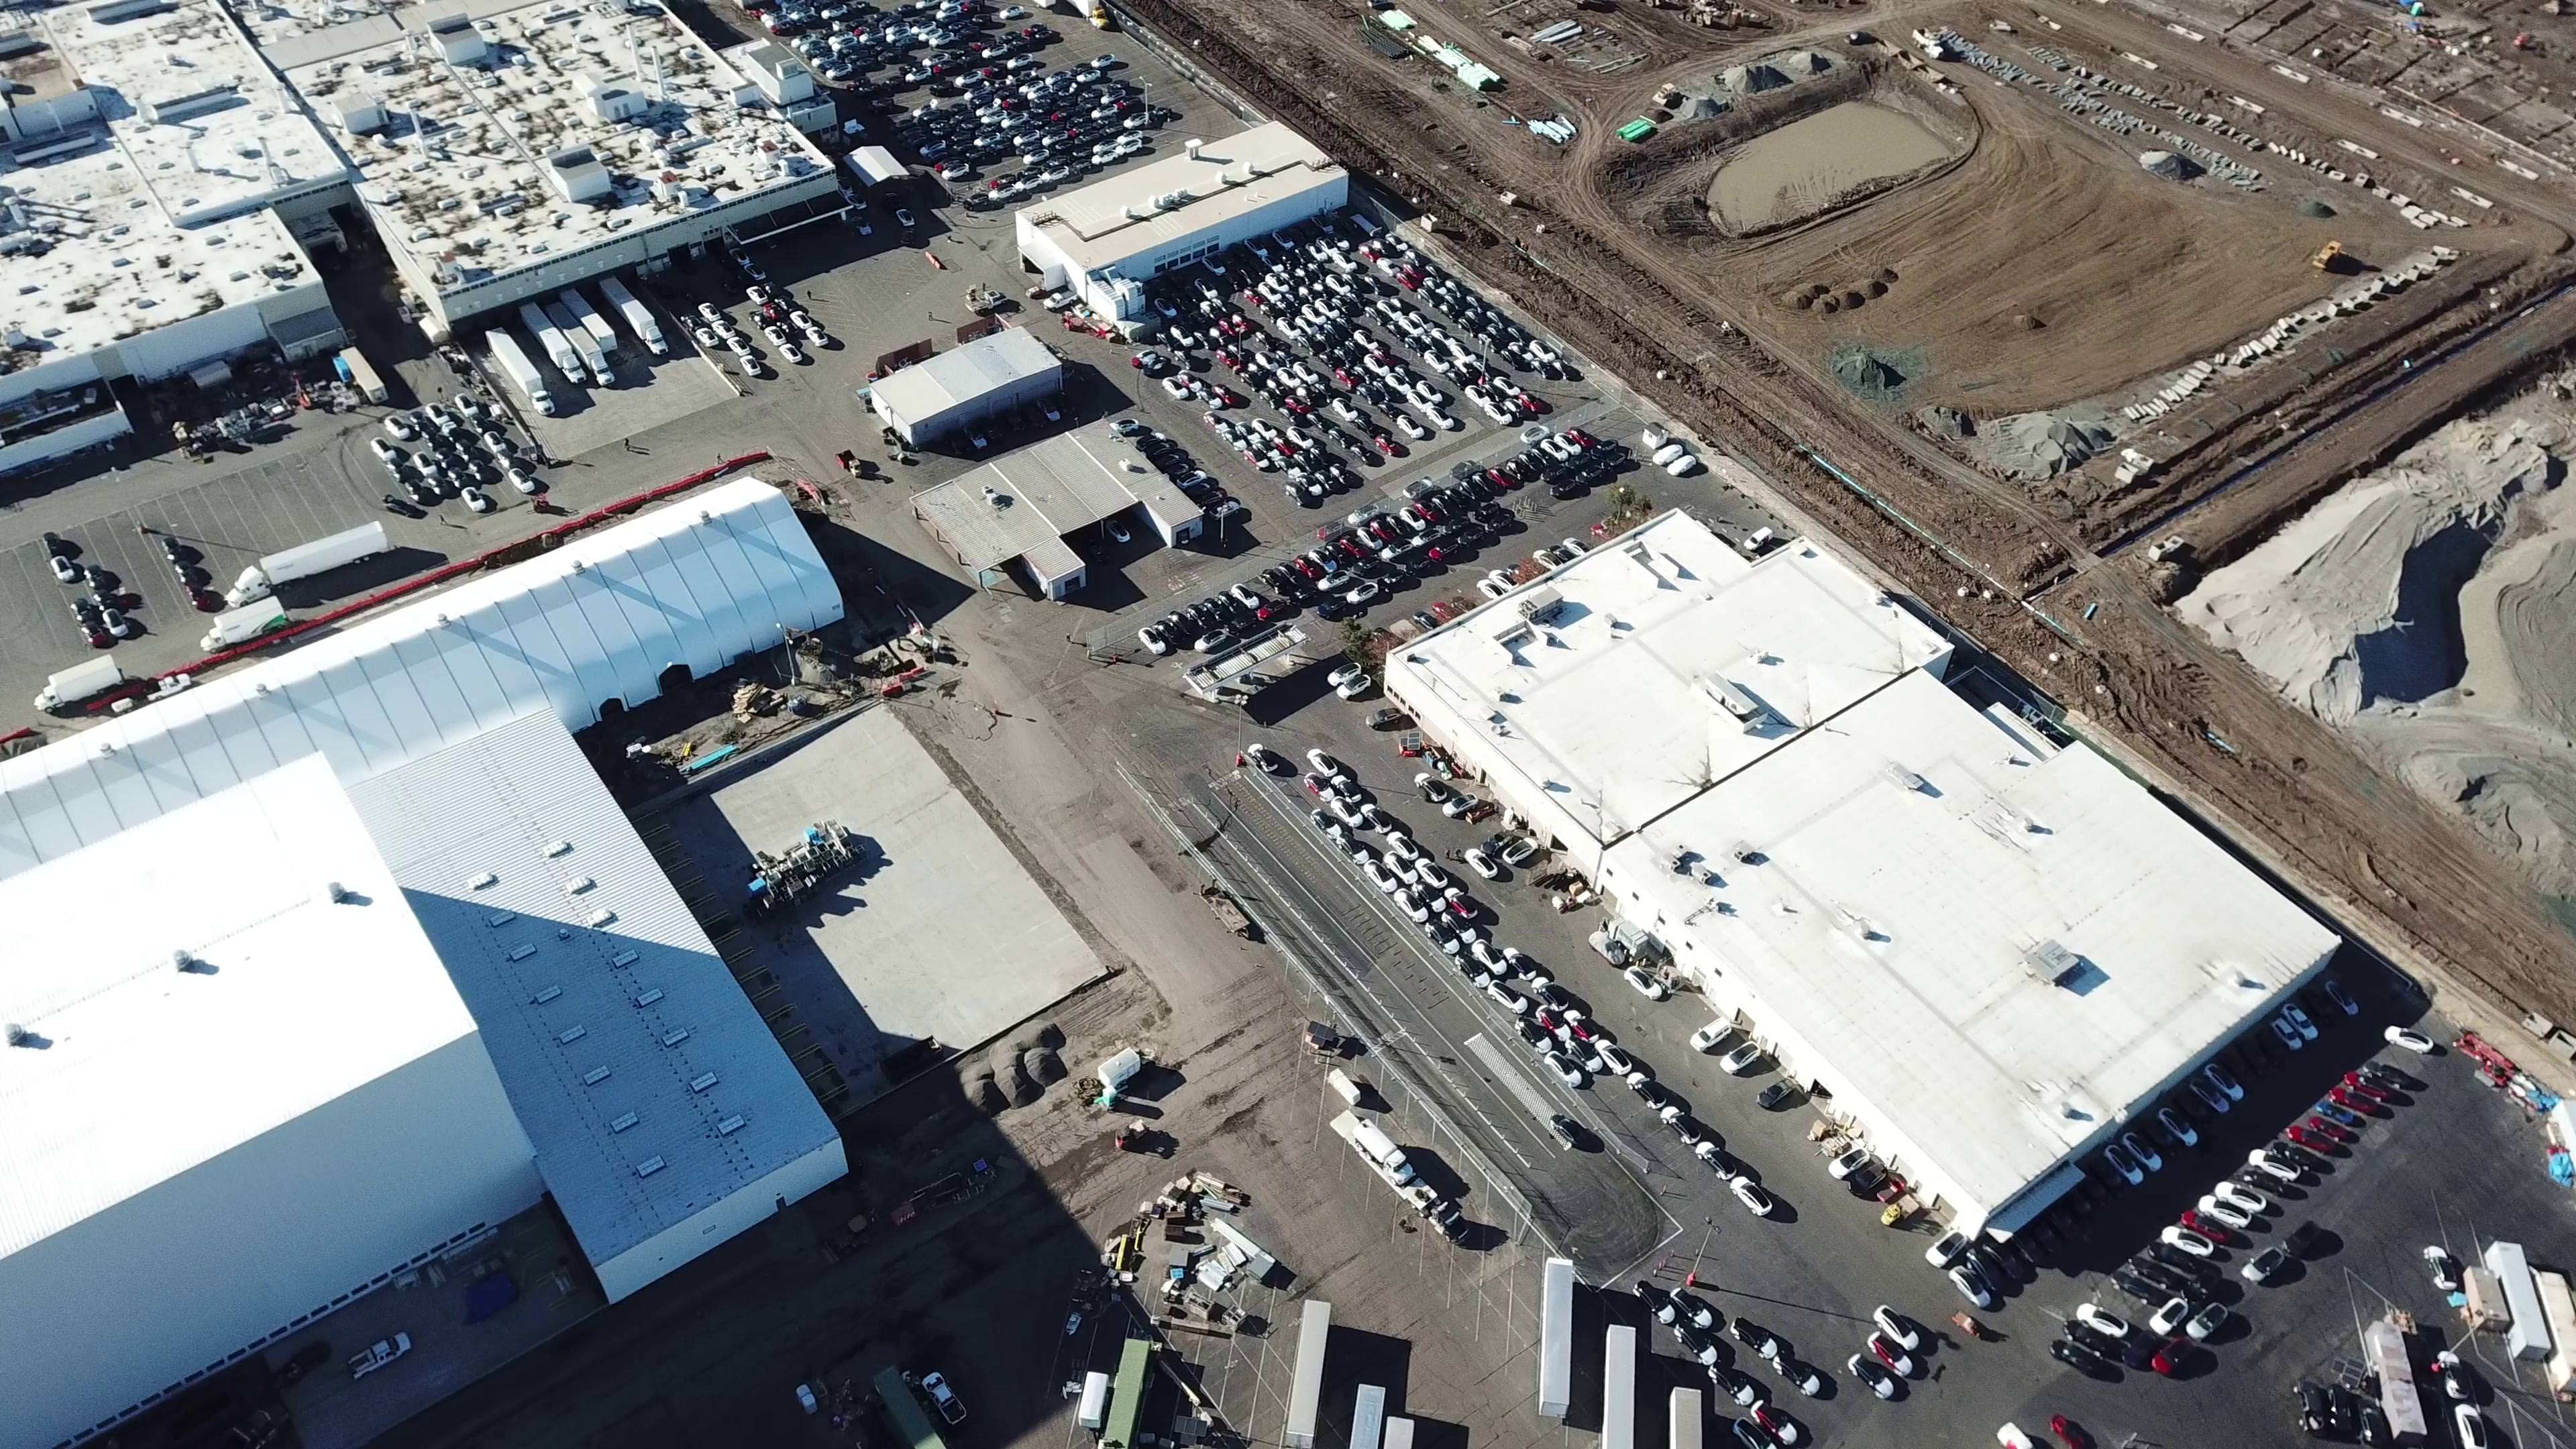 tesla-model-3-inventory-fremont-factory-drone-aerial-5